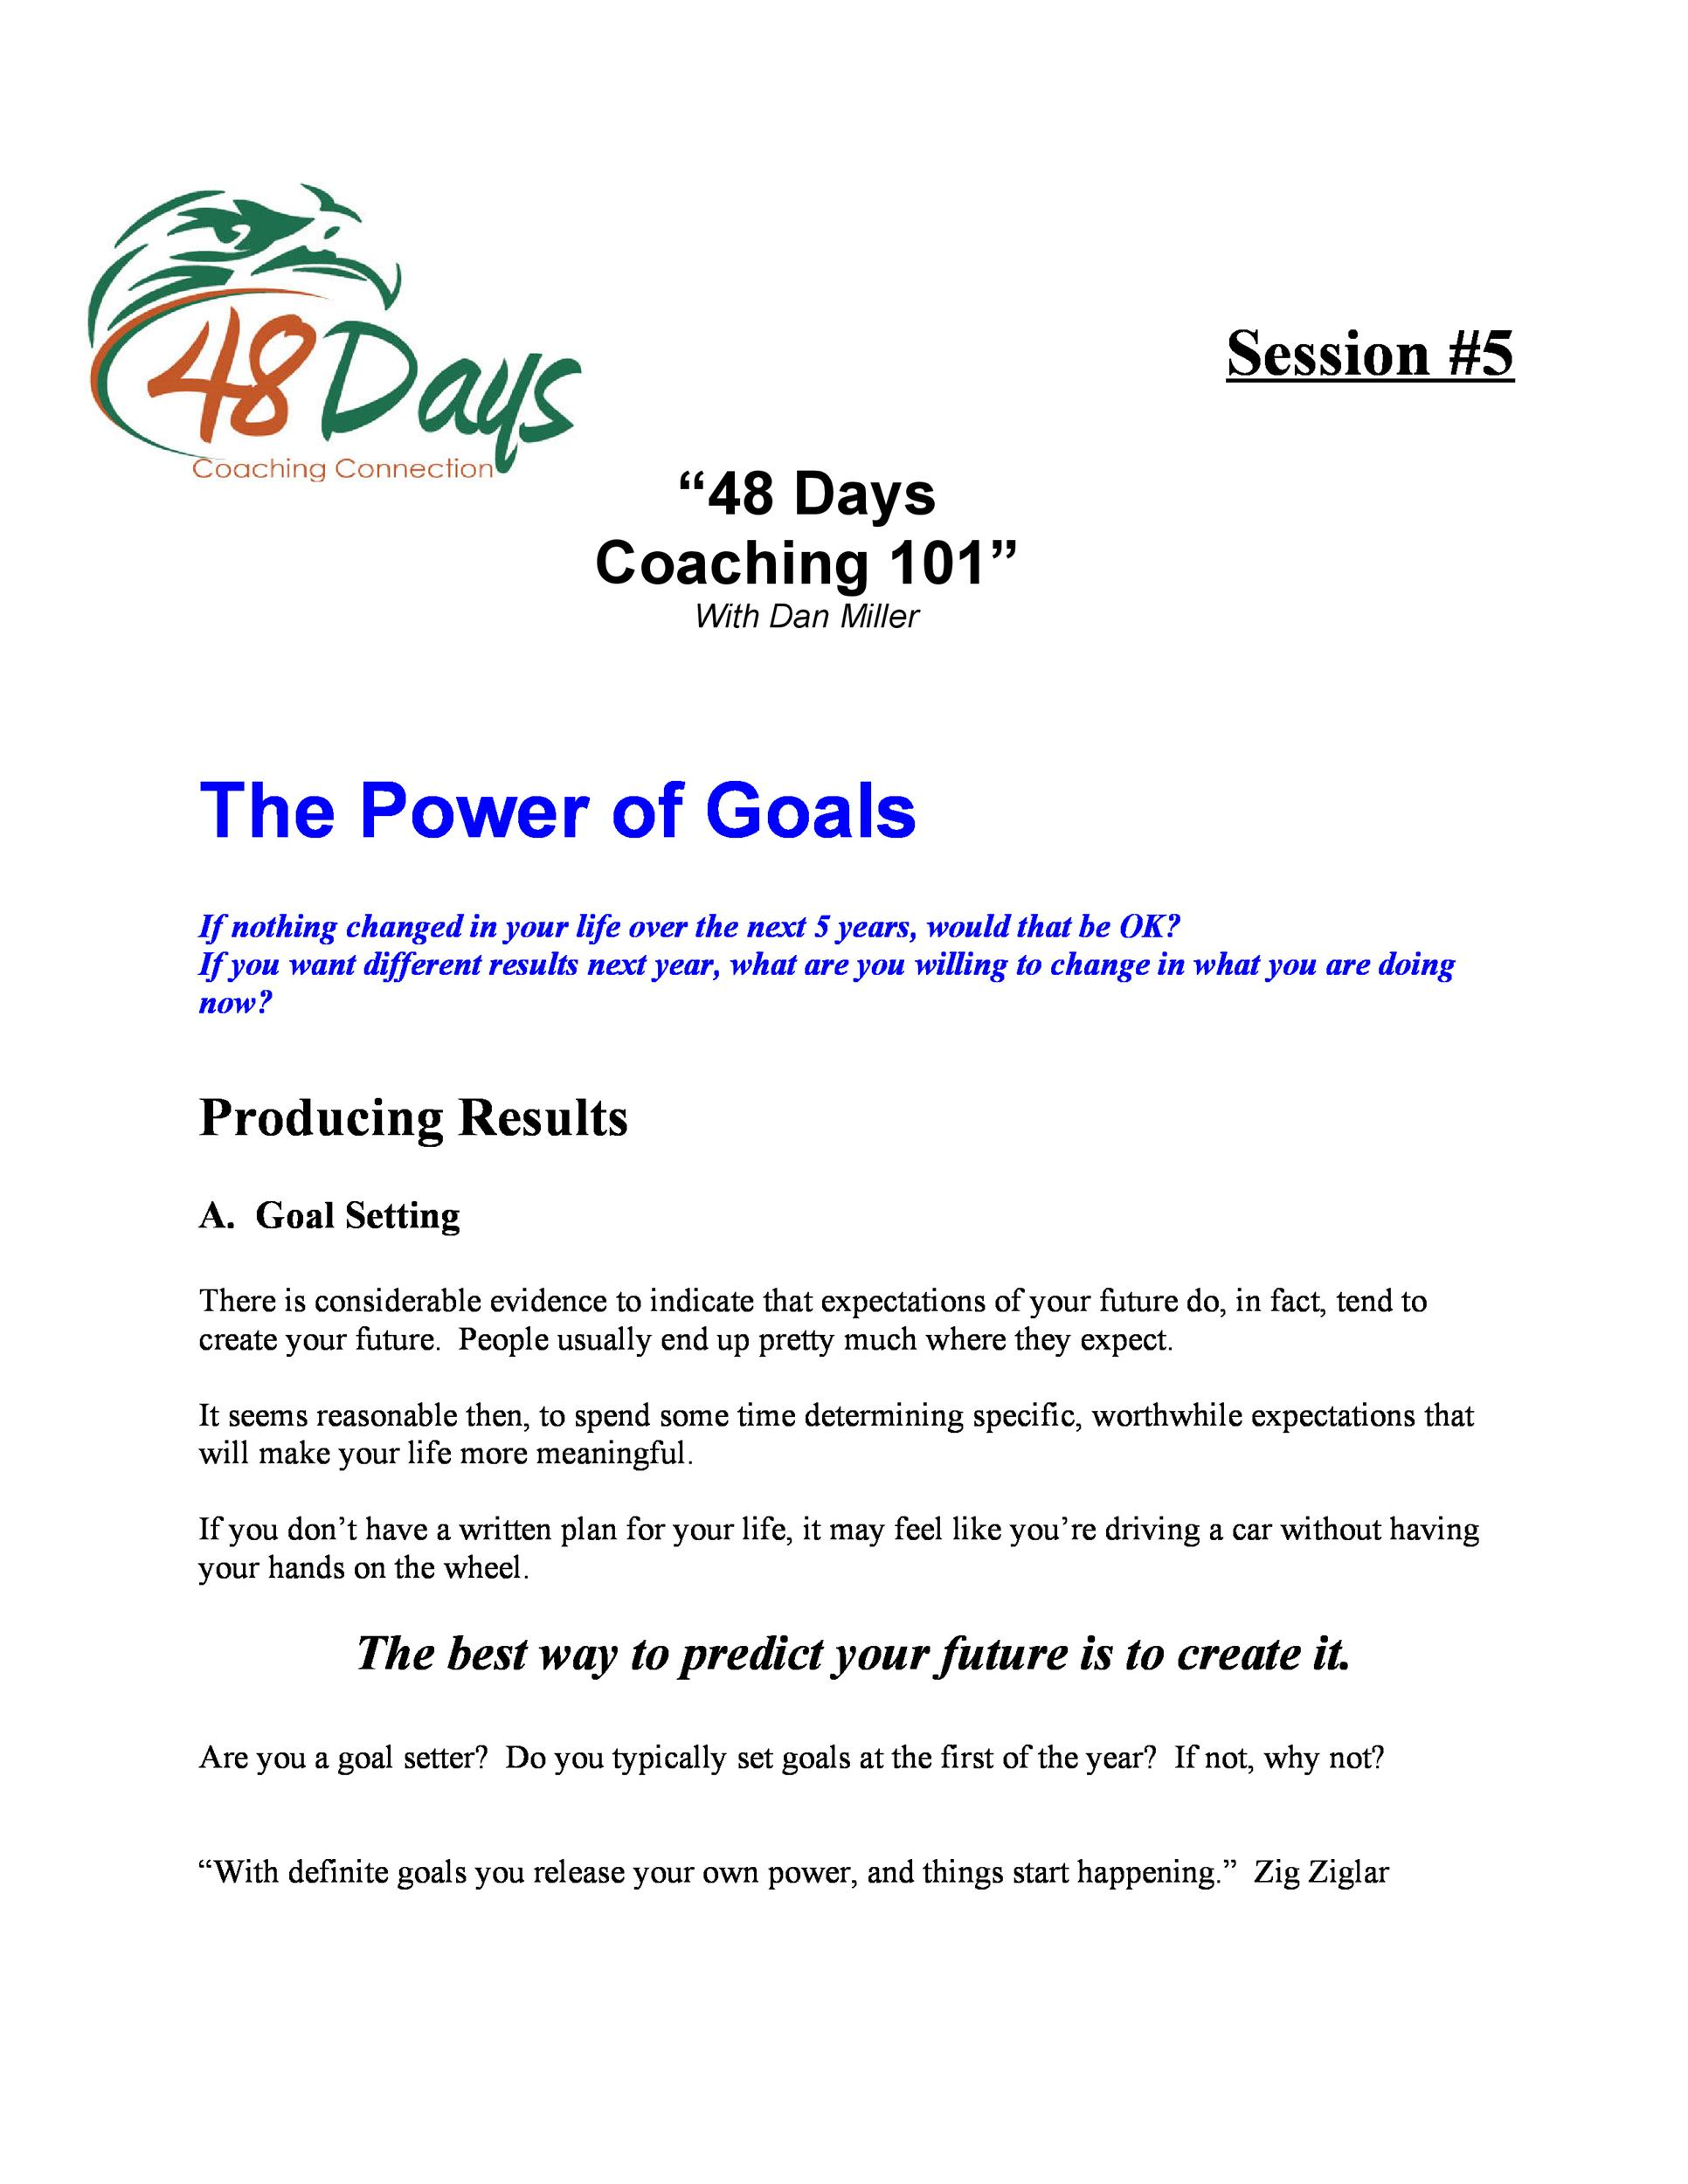 41 S M A R T Goal Setting Templates Amp Worksheets Template Lab